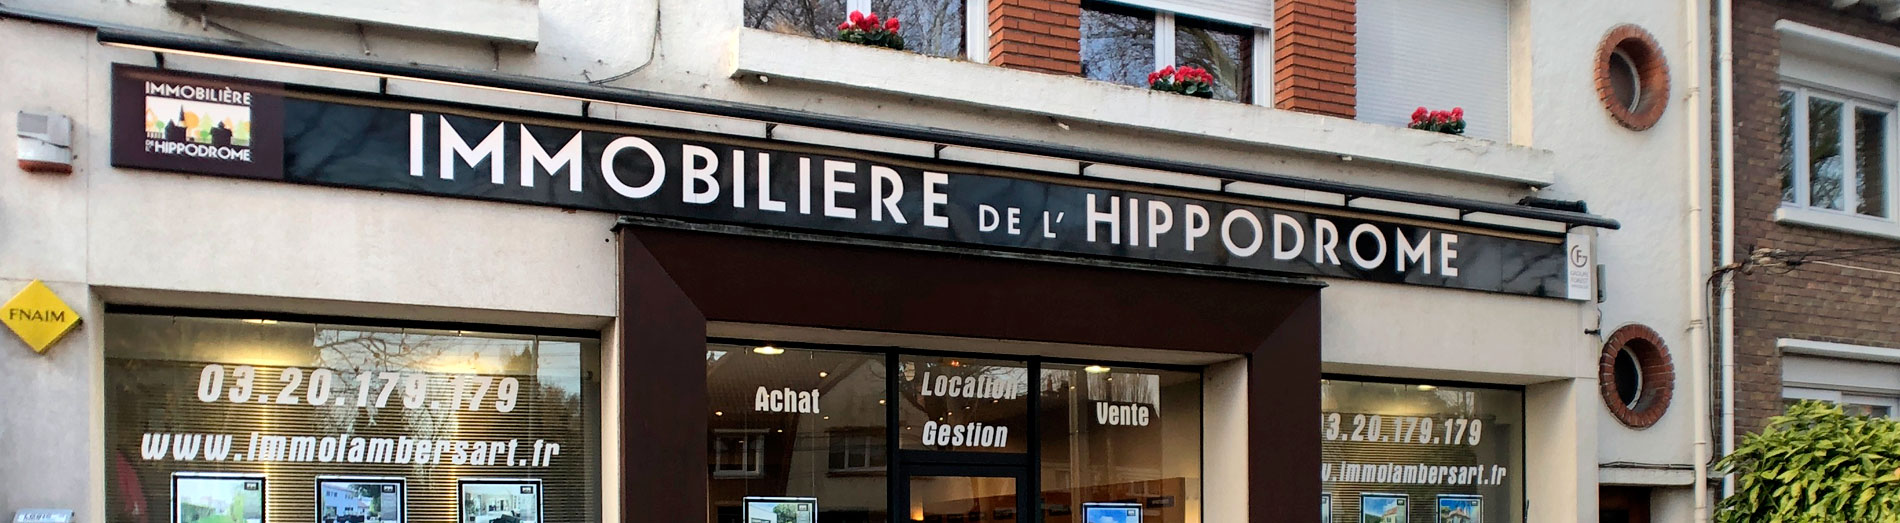 Agence immobiliere hippodrome Lambersart